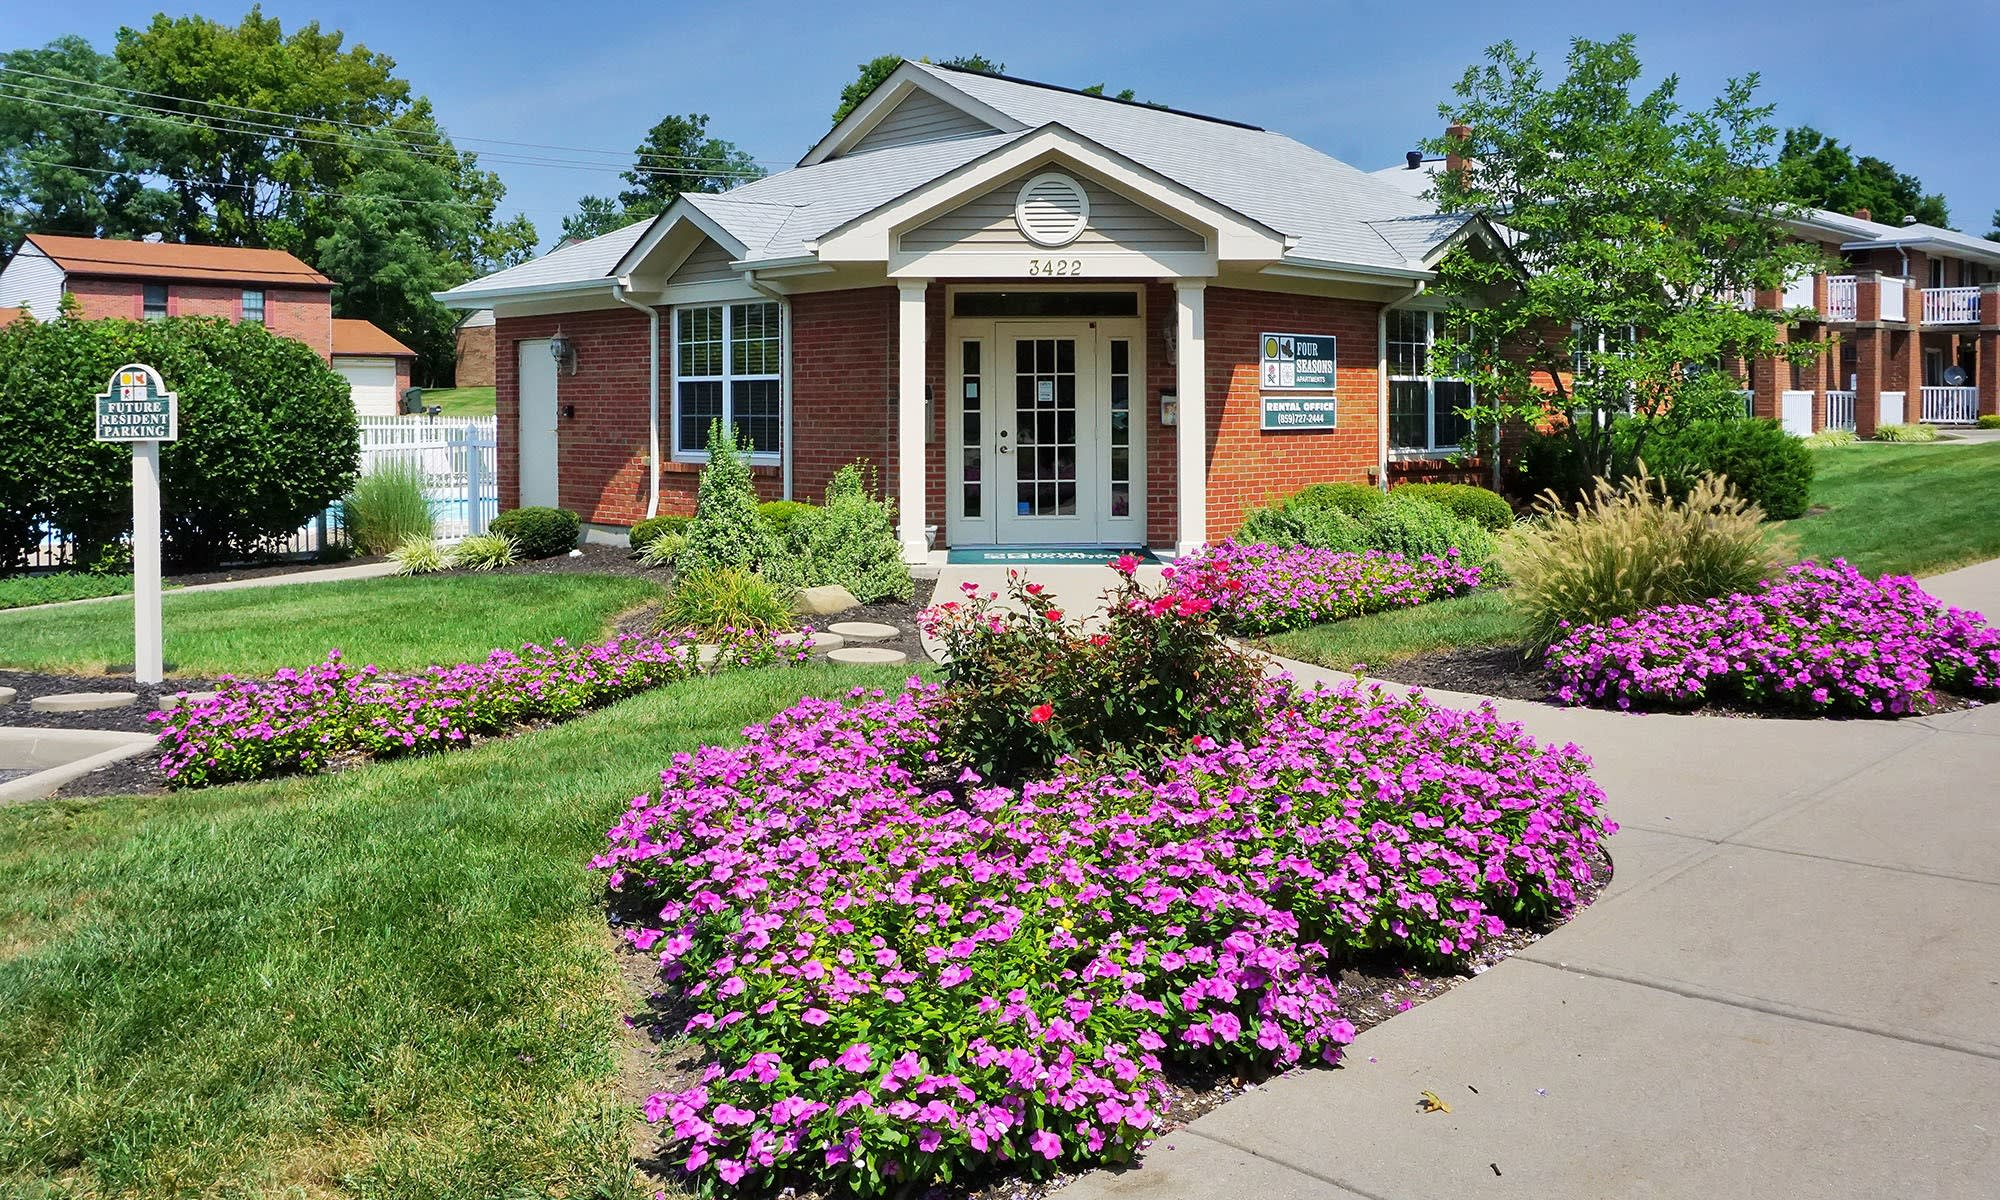 Beautifully landscaped entrance to the leasing office at Four Seasons Apartments in Erlanger, Kentucky